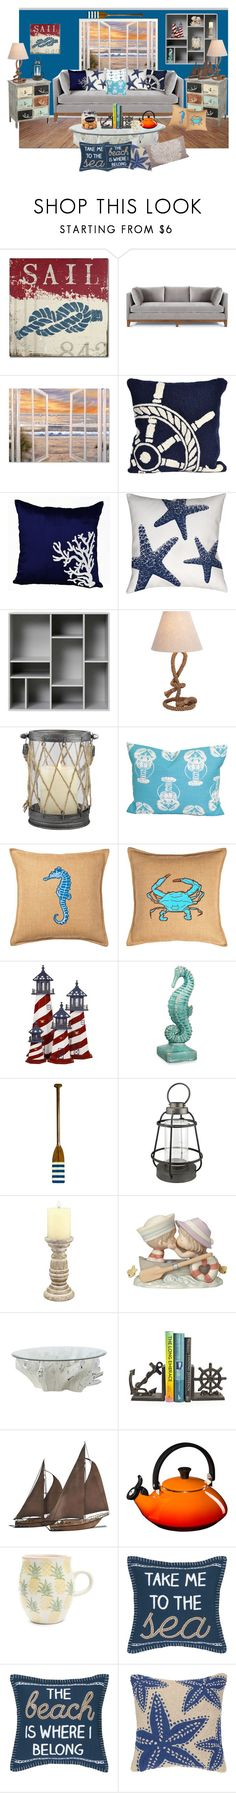 """""""Nautical Throw"""" by jayme-becker ❤ liked on Polyvore featuring interior, interiors, interior design, home, home decor, interior decorating, Trademark Fine Art, Liora Manné, Thumbprintz and Casa Cortes"""